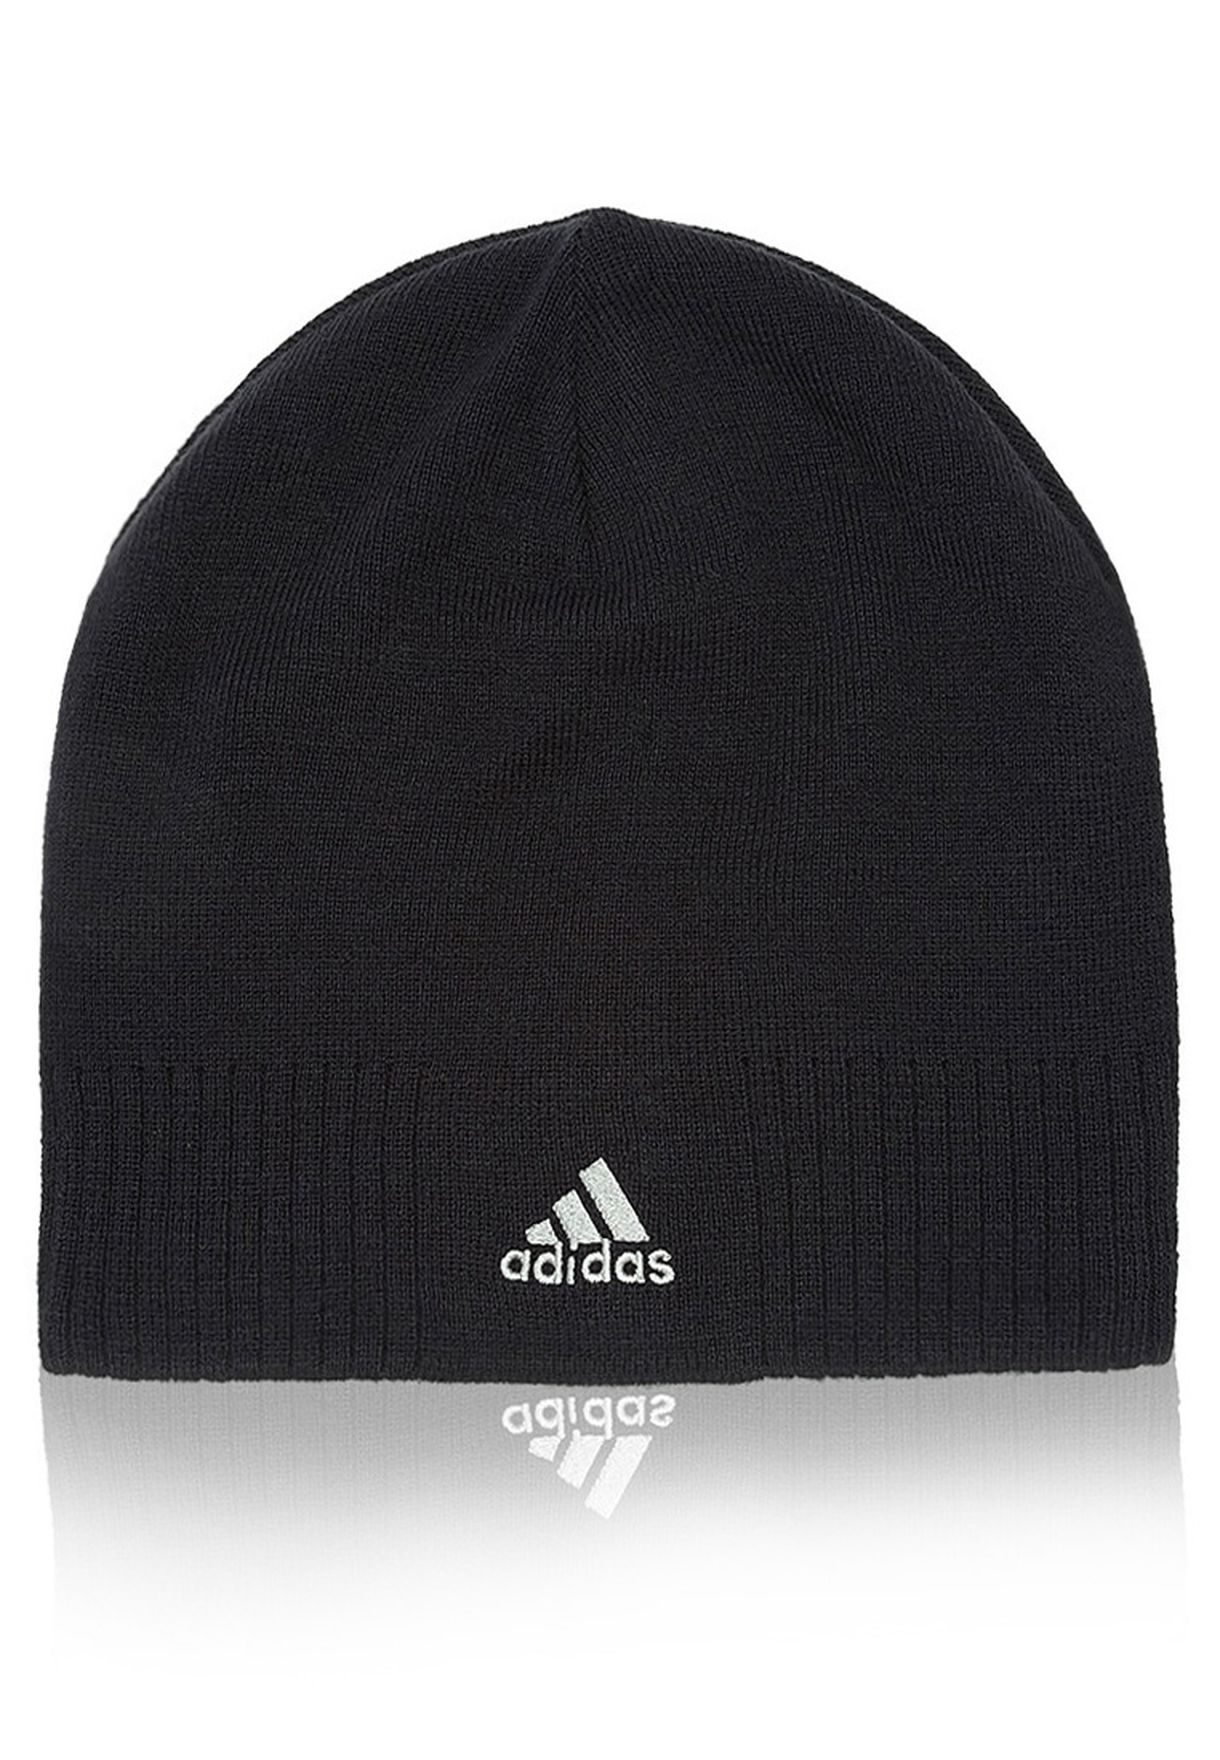 50546147878 ... clearance shop adidas black ess corp beanie w57345 for men in saudi  ad476ac58mth f3837 8aee7